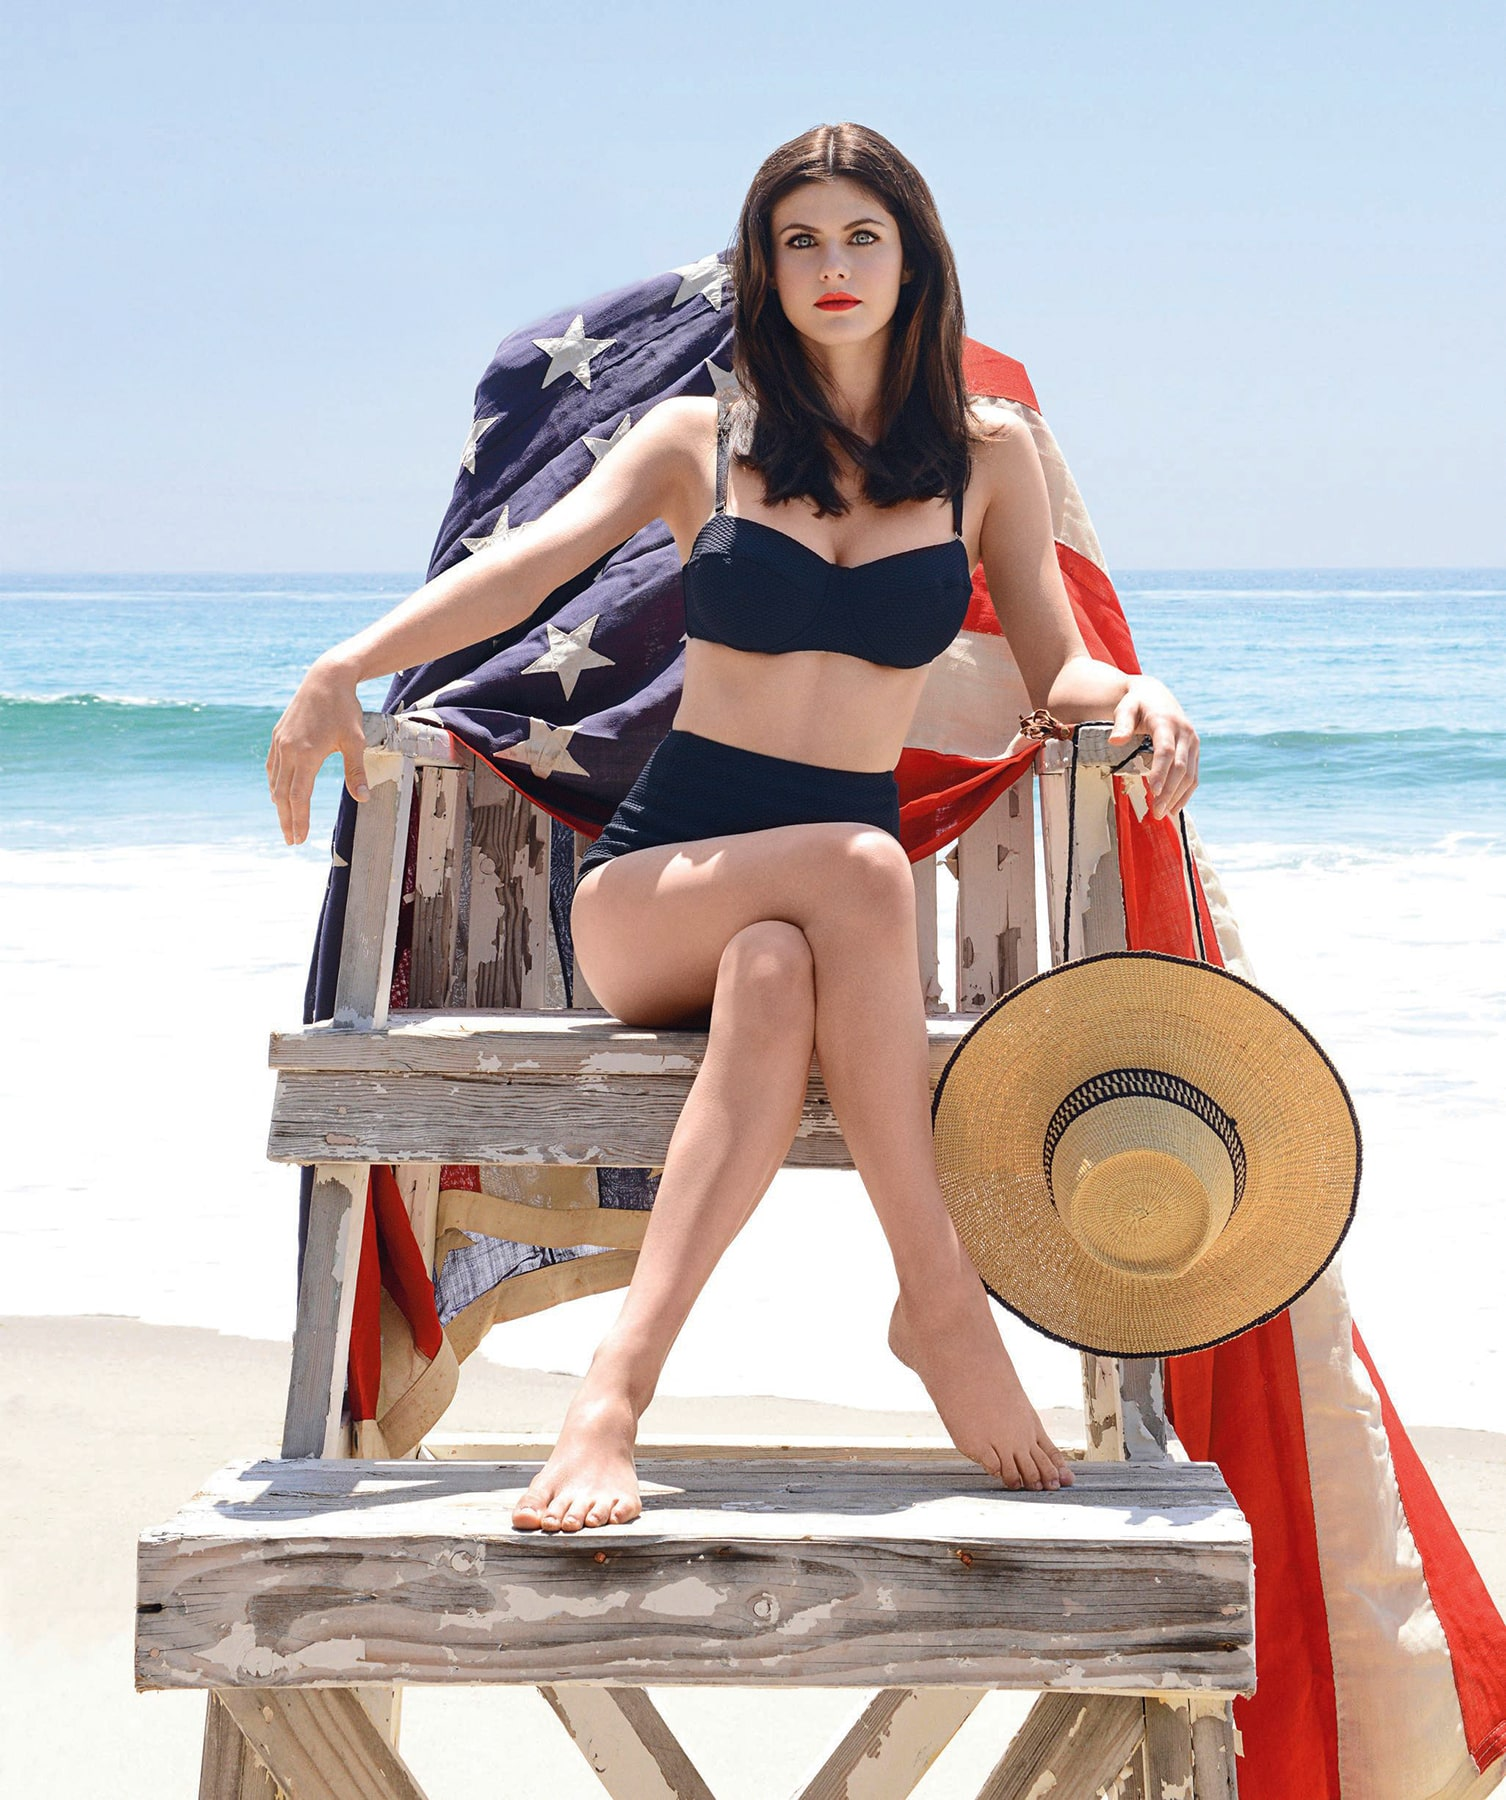 Alexandra daddario sexy photo